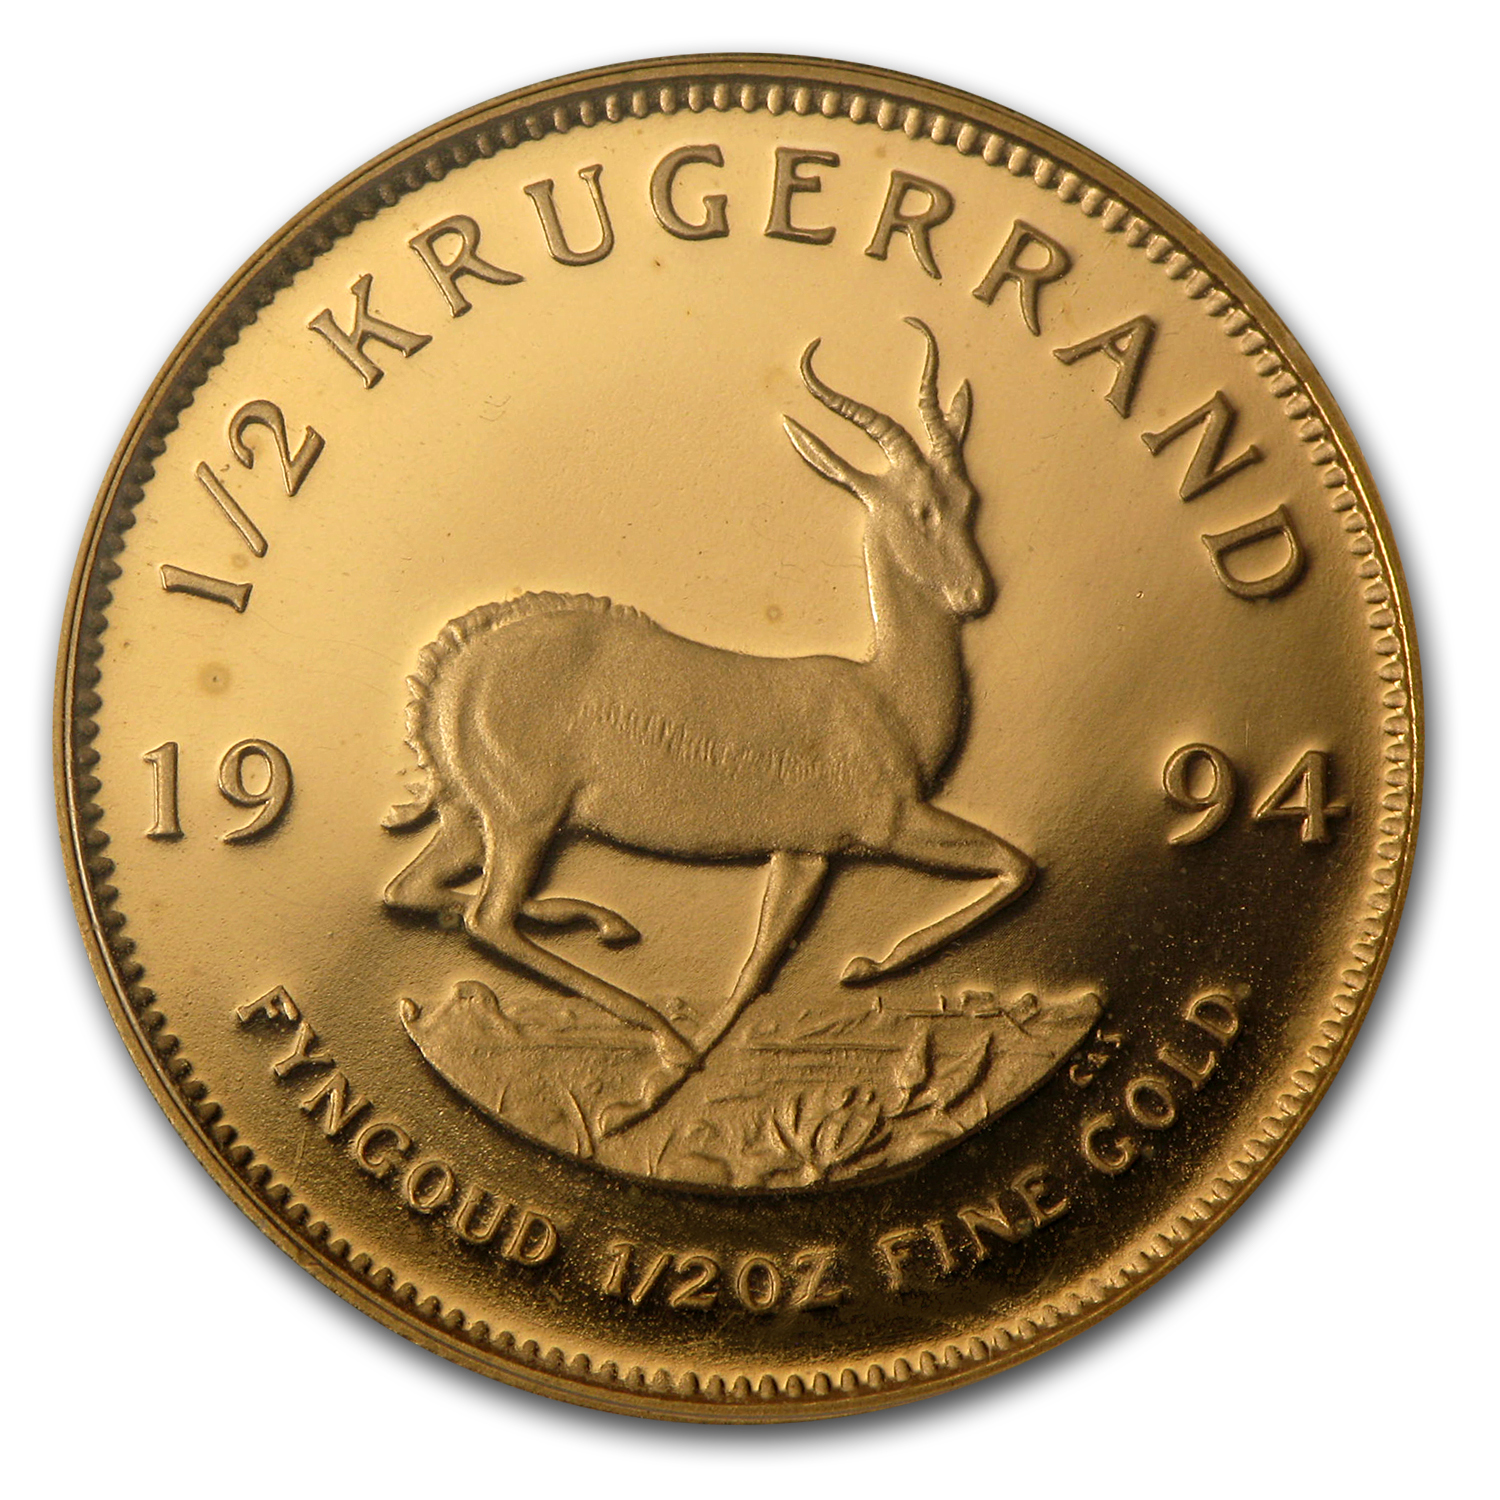 1994 1/2 oz Gold South African Krugerrand (Proof)